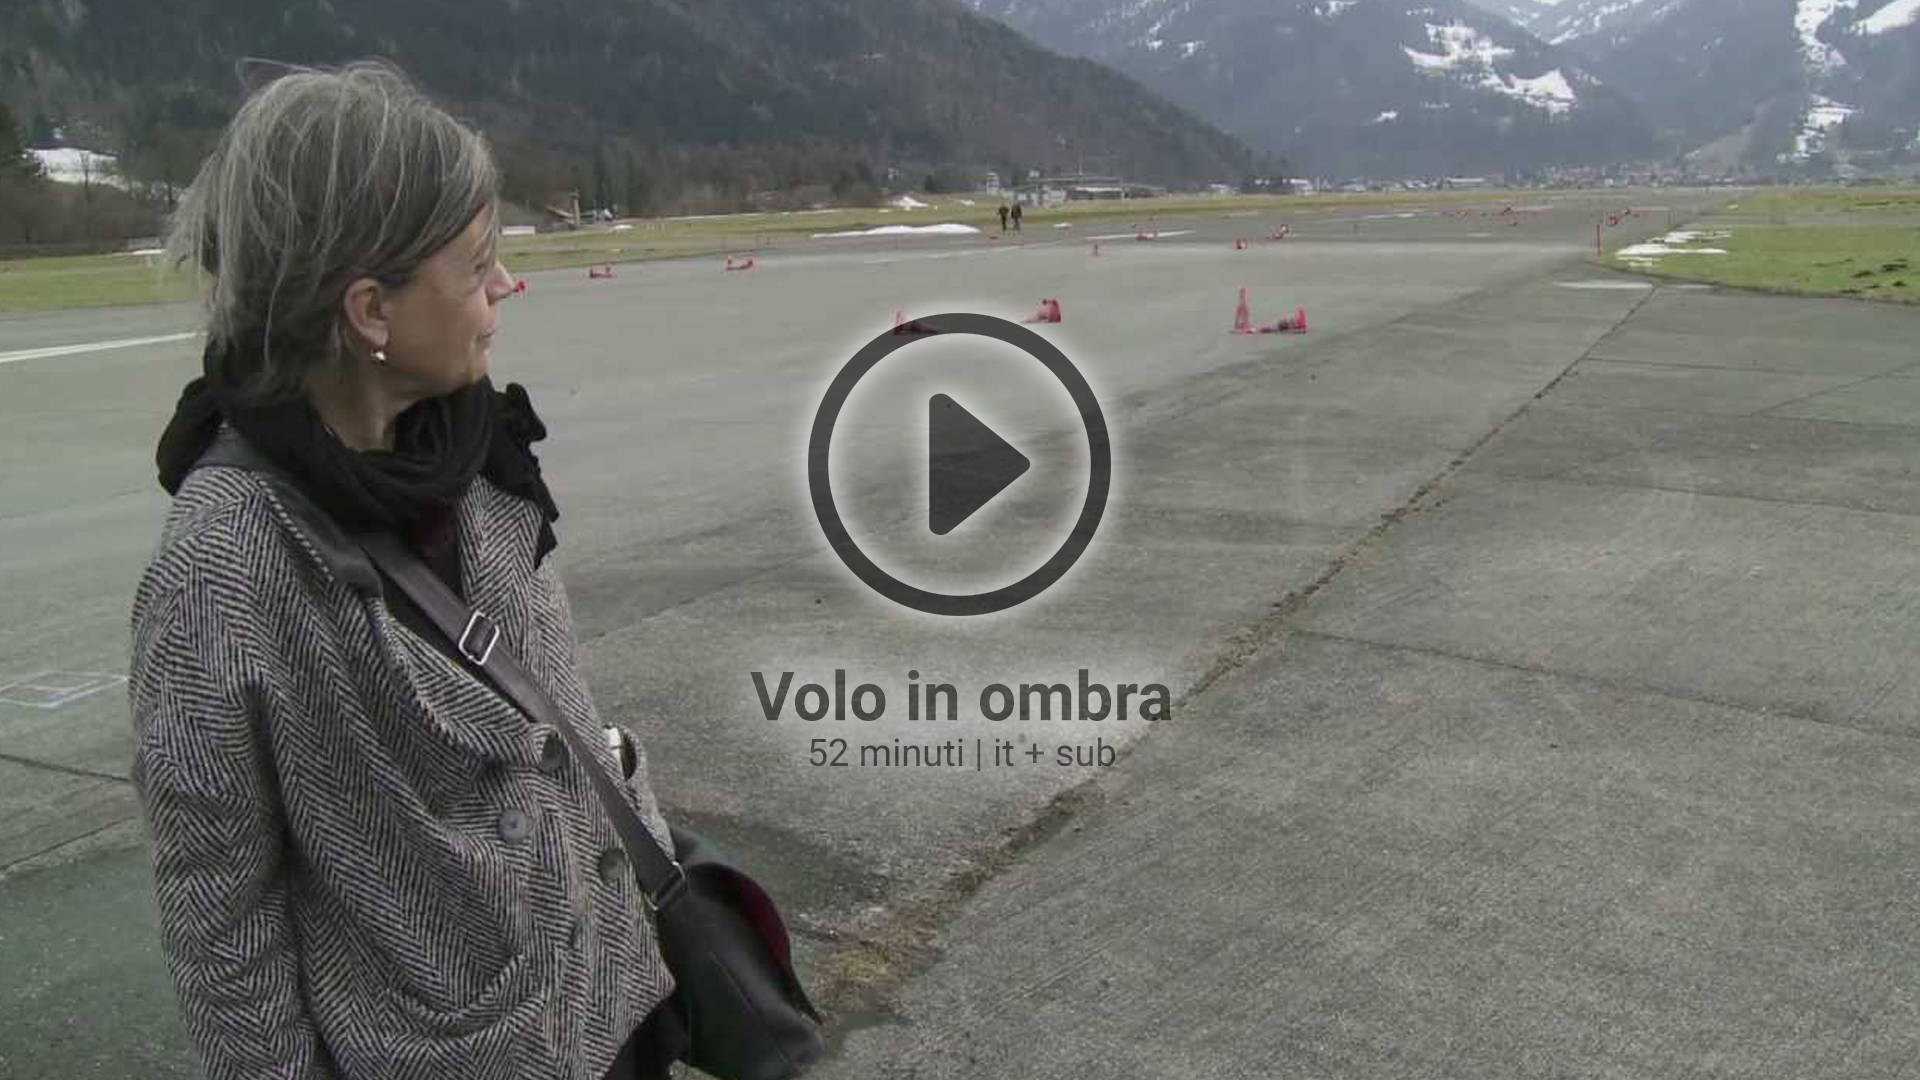 Volo in ombra